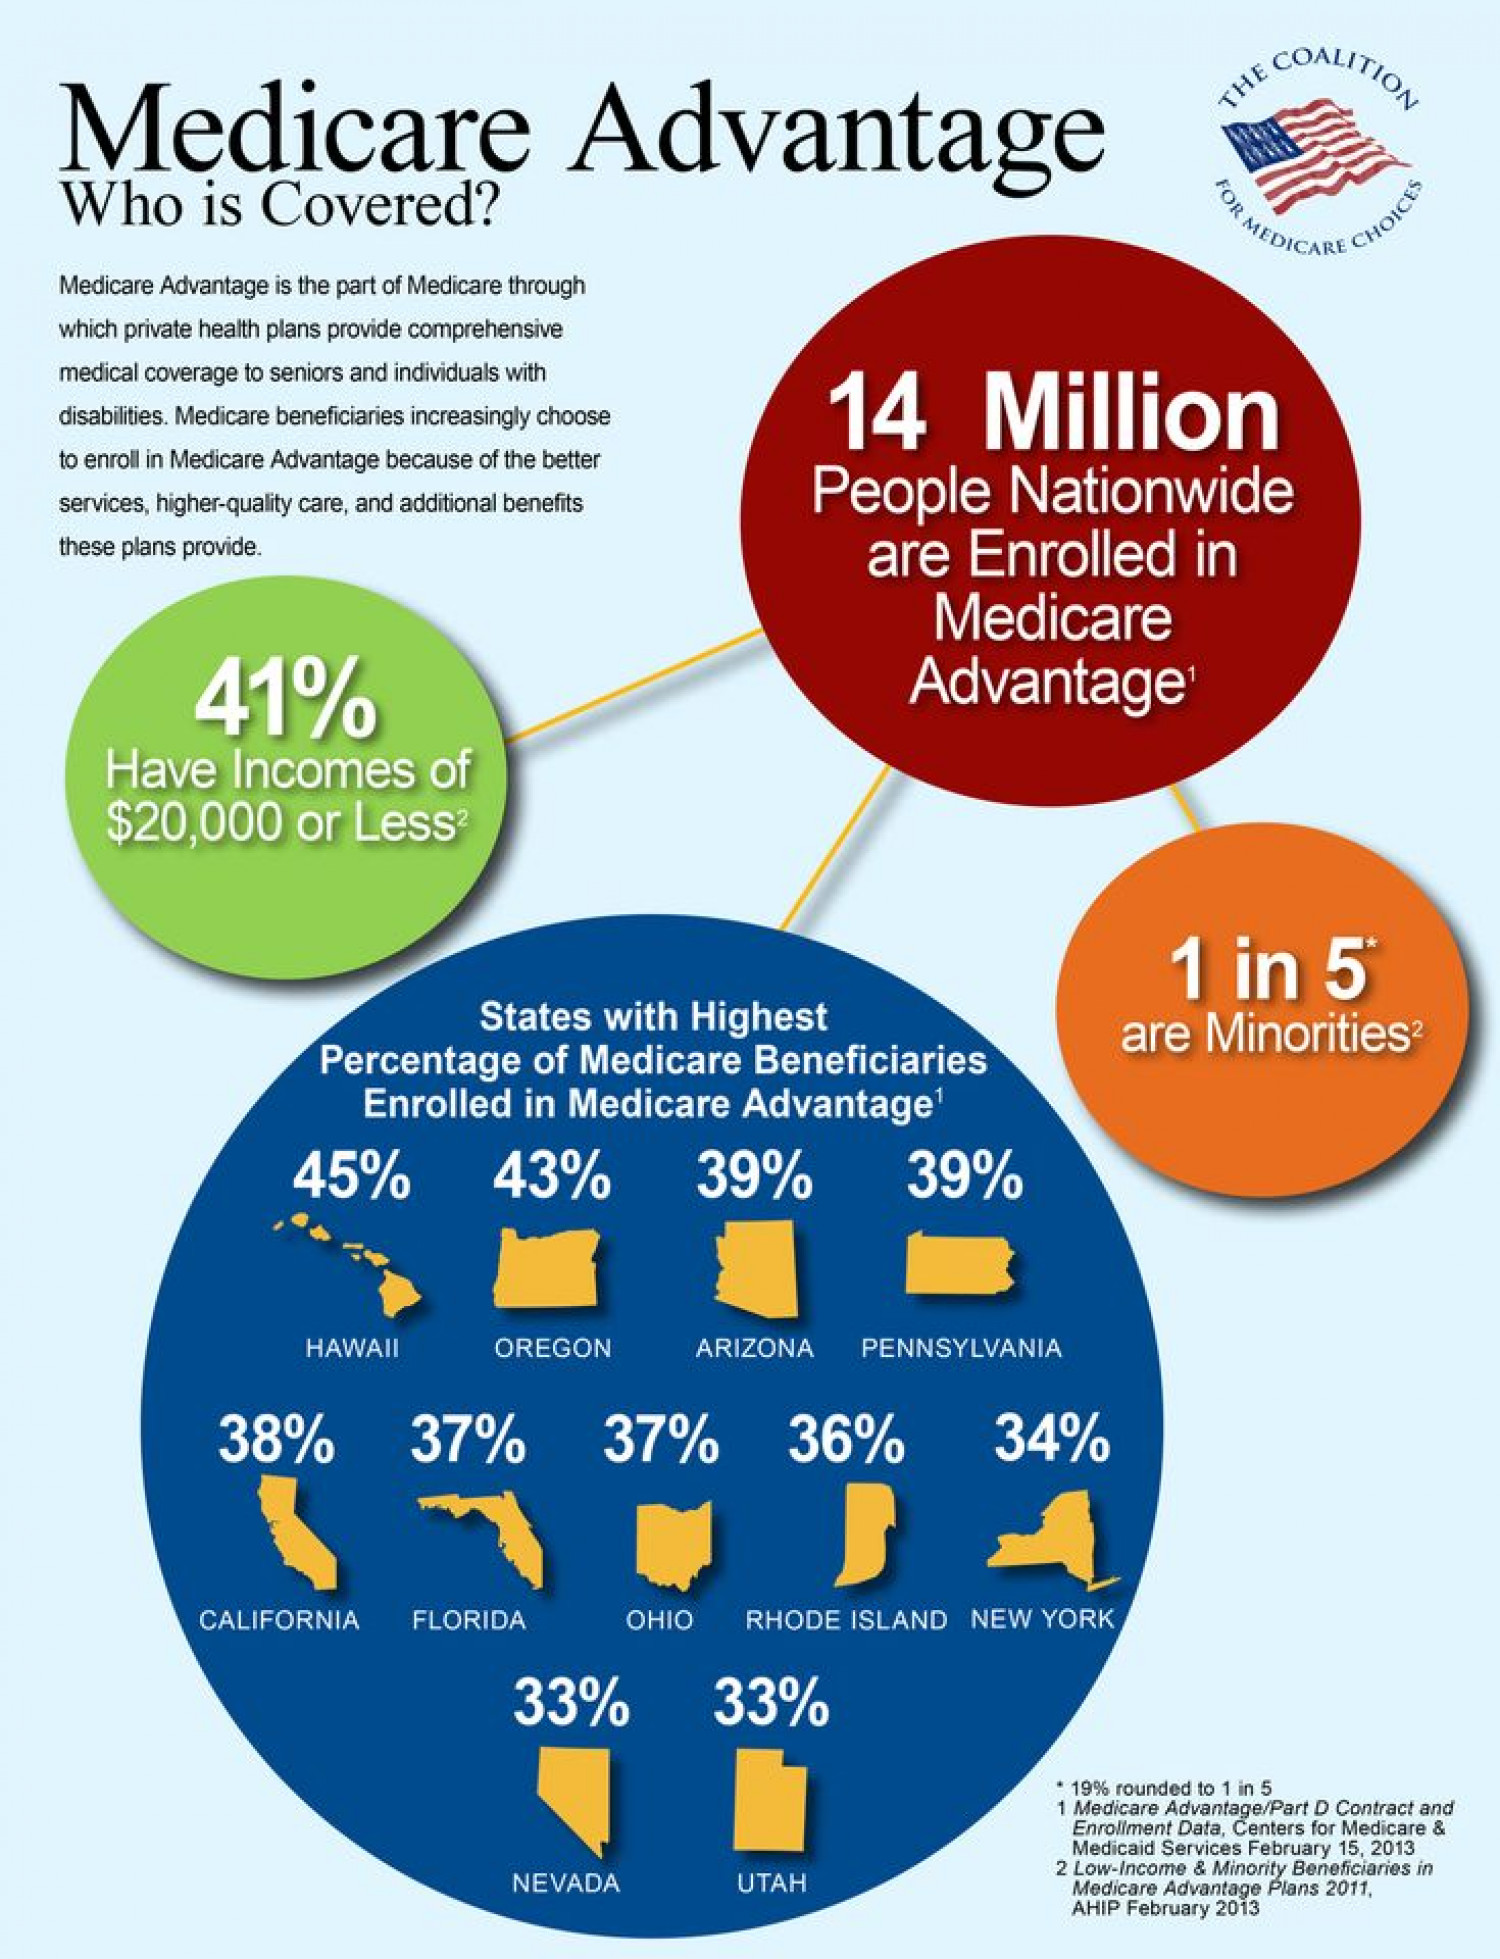 Medicare Advantage: Who is Covered? Infographic